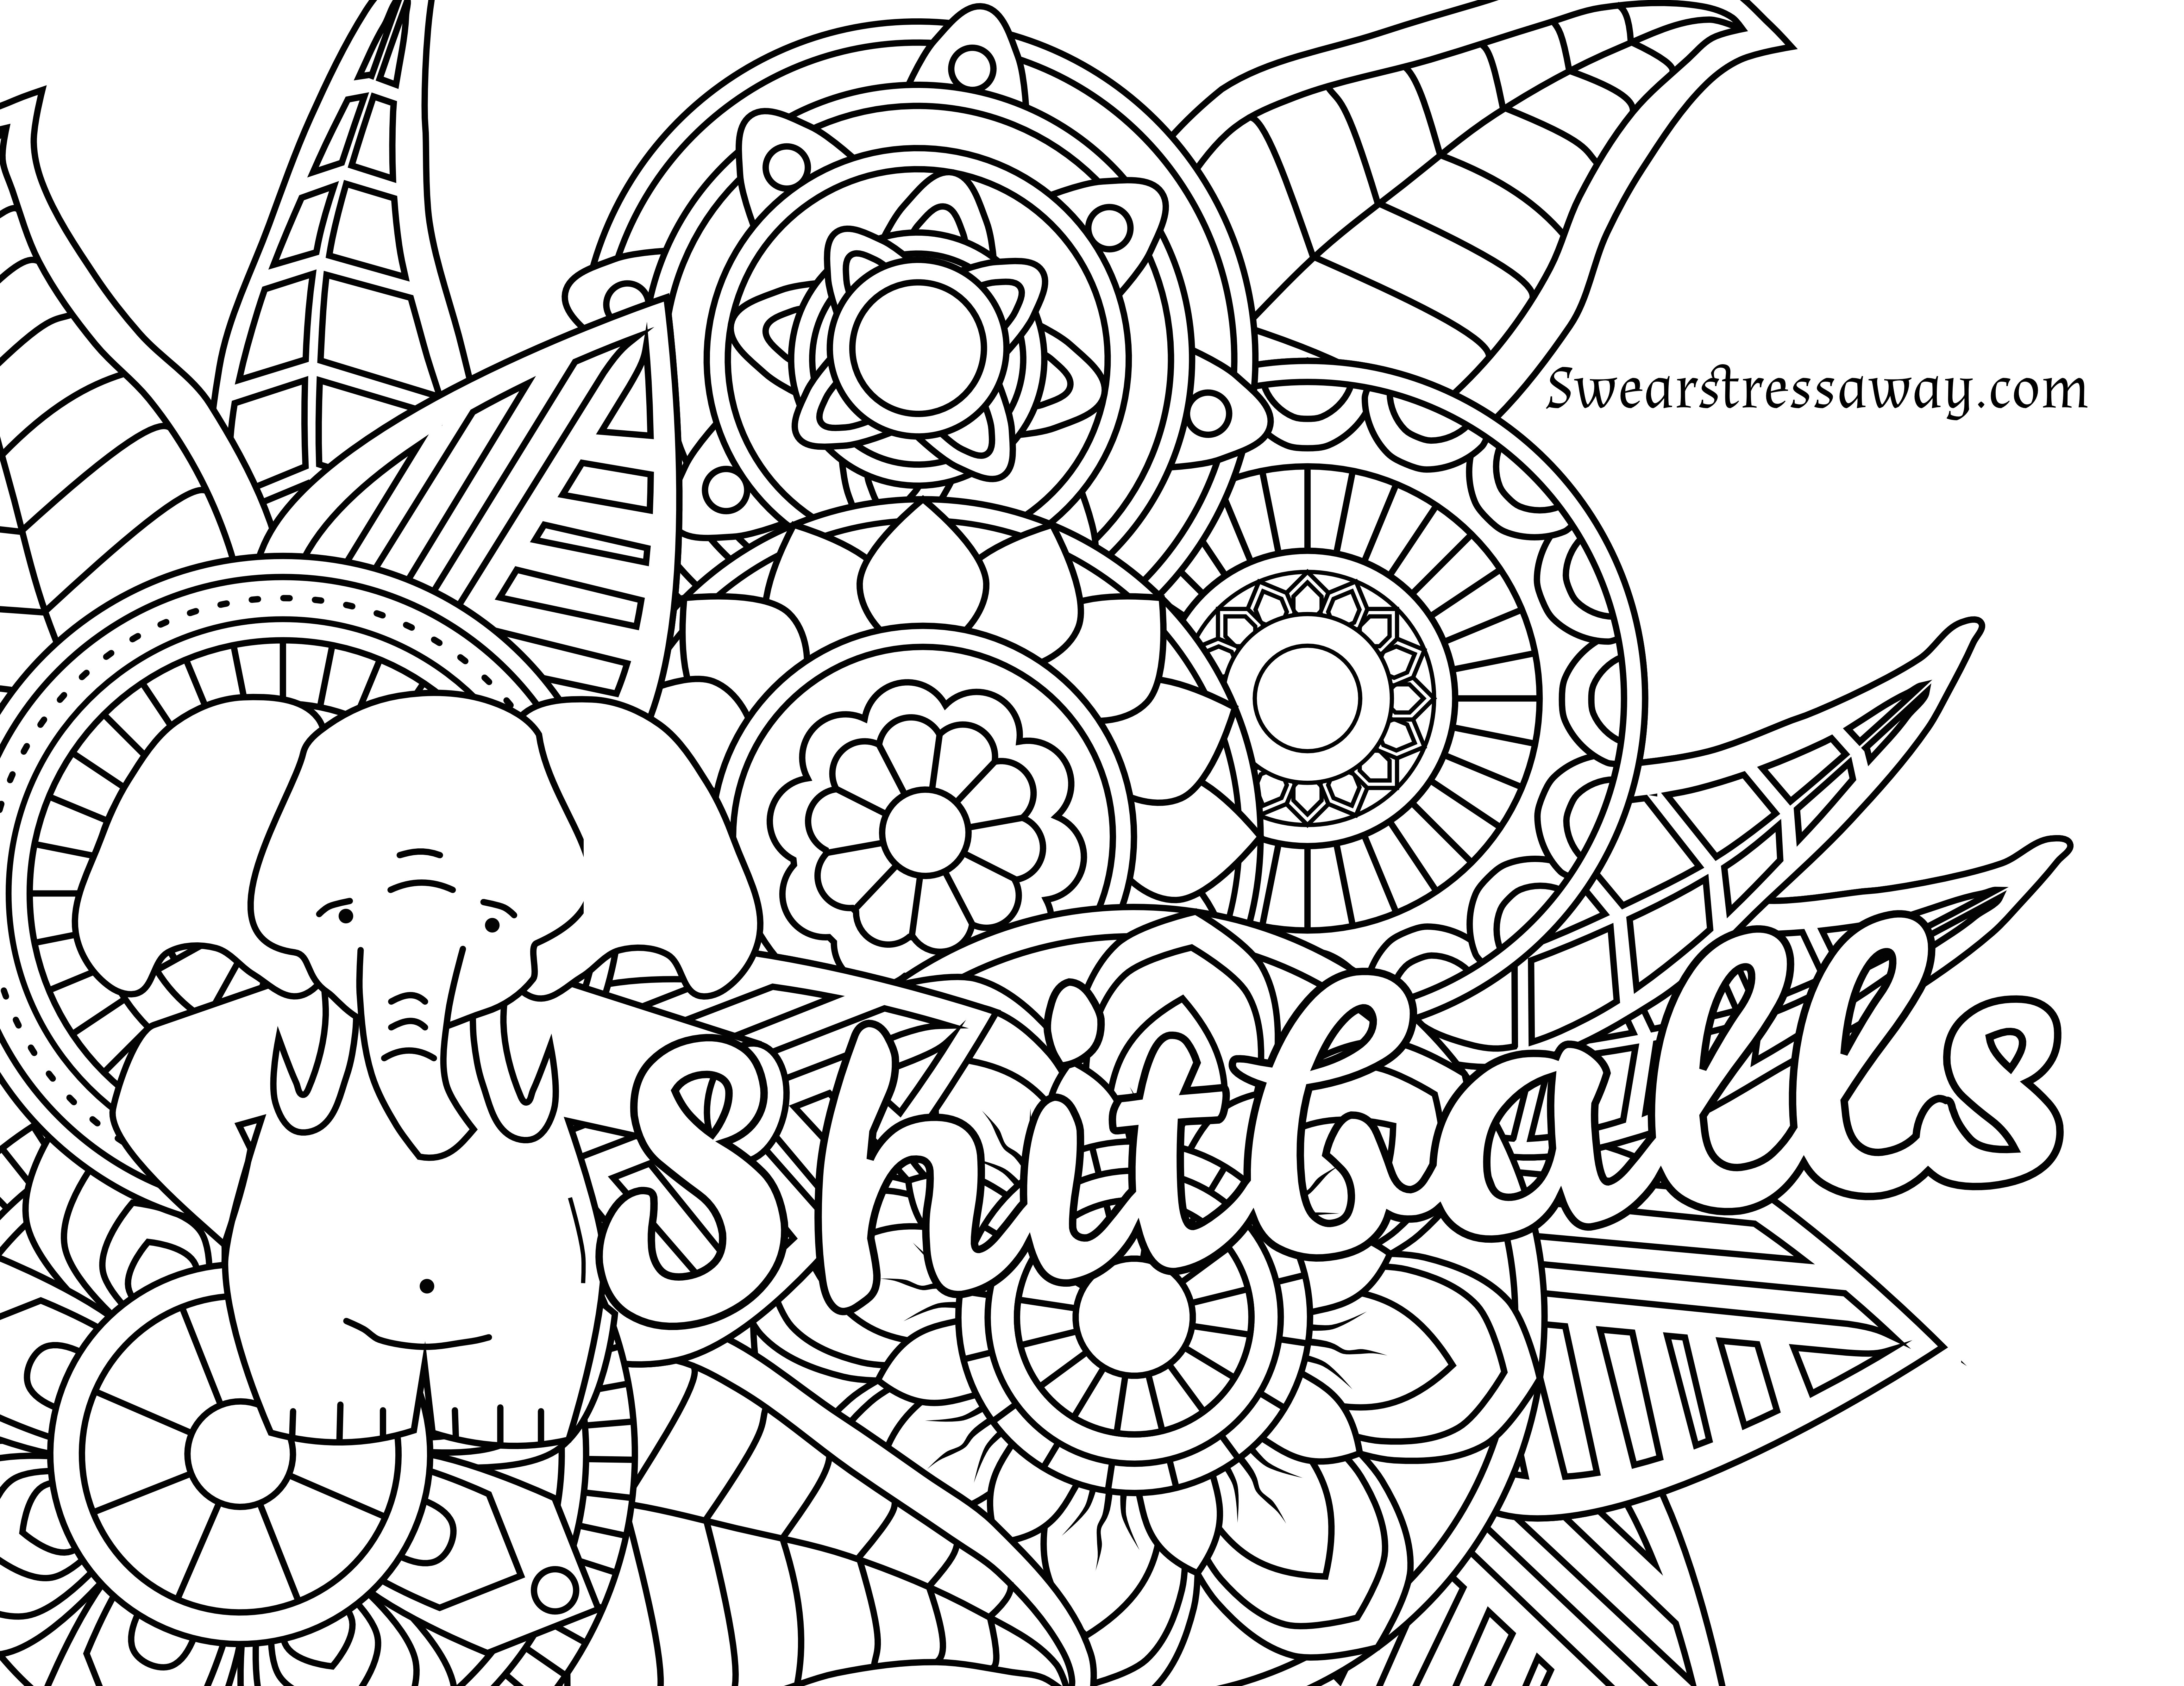 Printable Coloring Pages Adults Free  Free Printable Adult Swear Word Coloring Pages Download